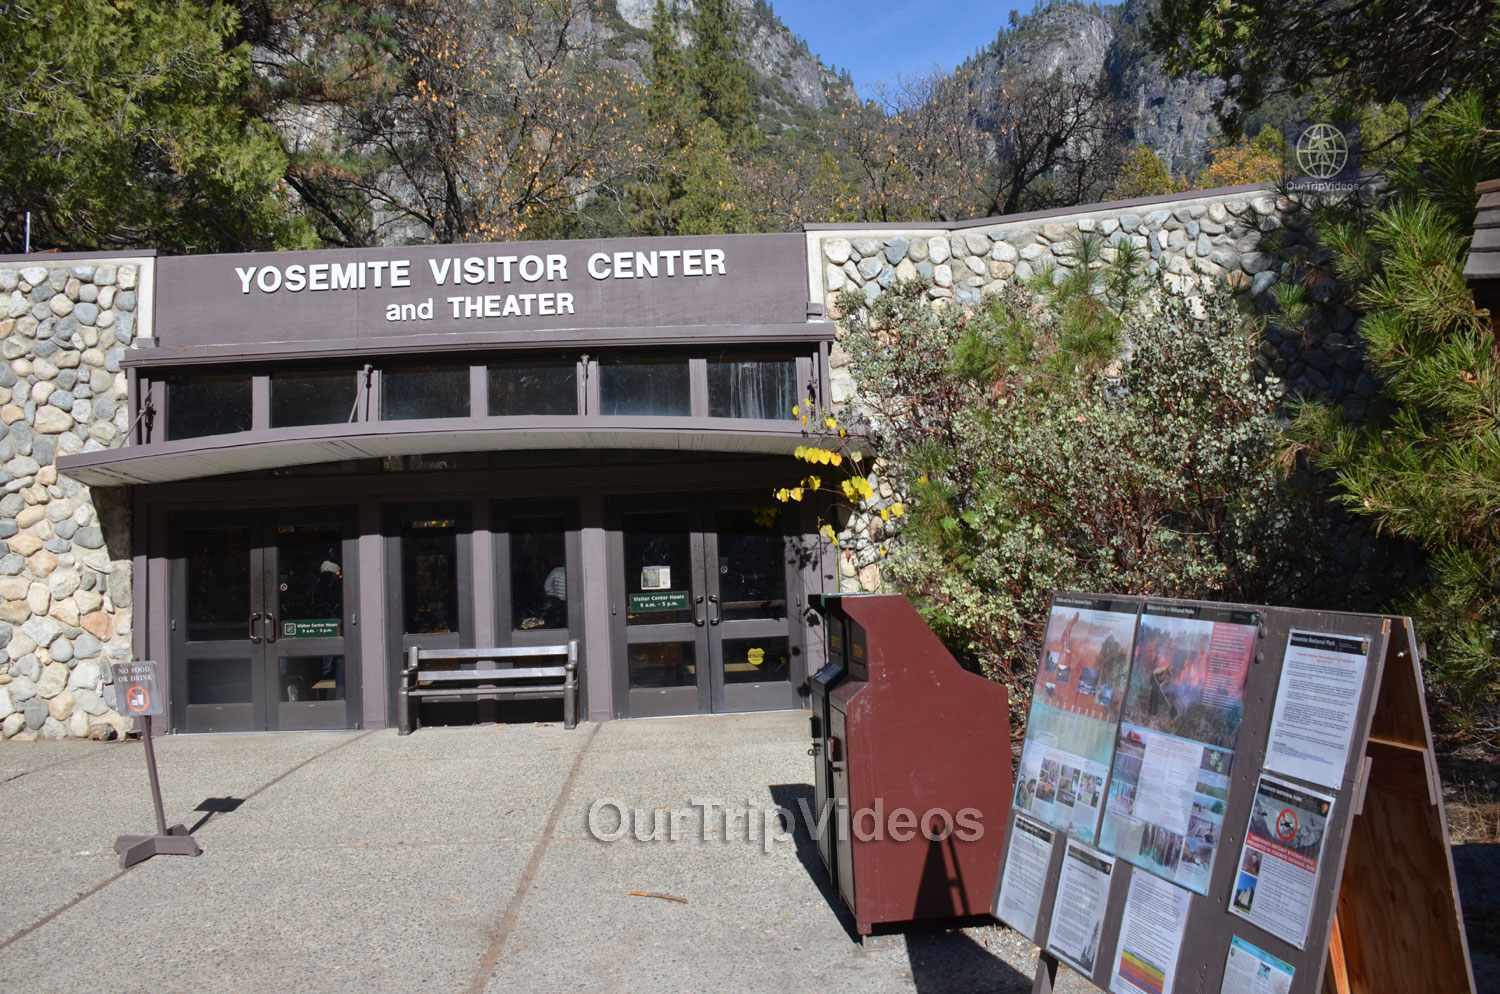 Yosemite National Park - Valley Visitor Center, Yosemite Valley, CA, USA - Picture 10 of 25